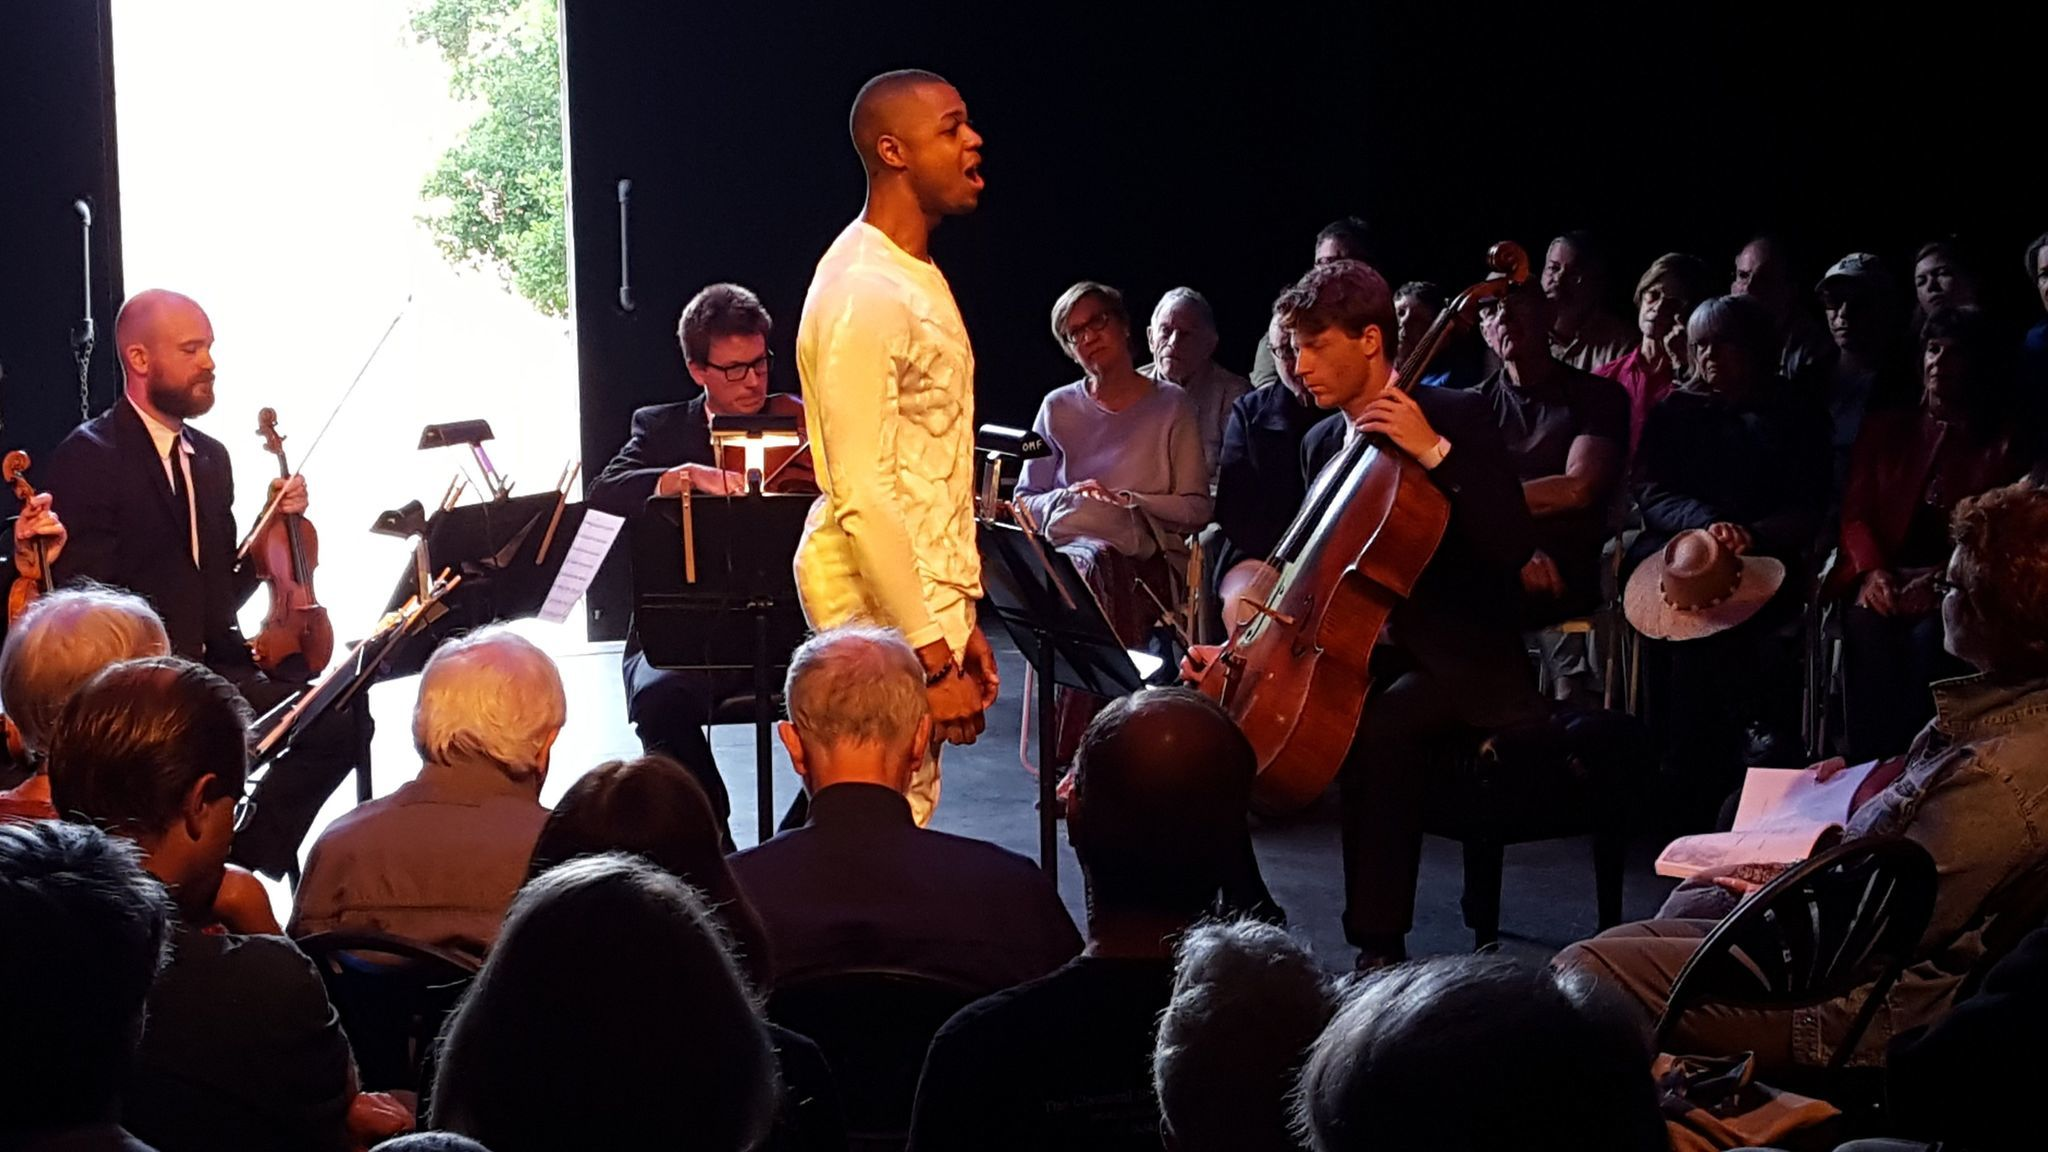 Davone Tines singing with the Calder Quartet at the Ojai festival.